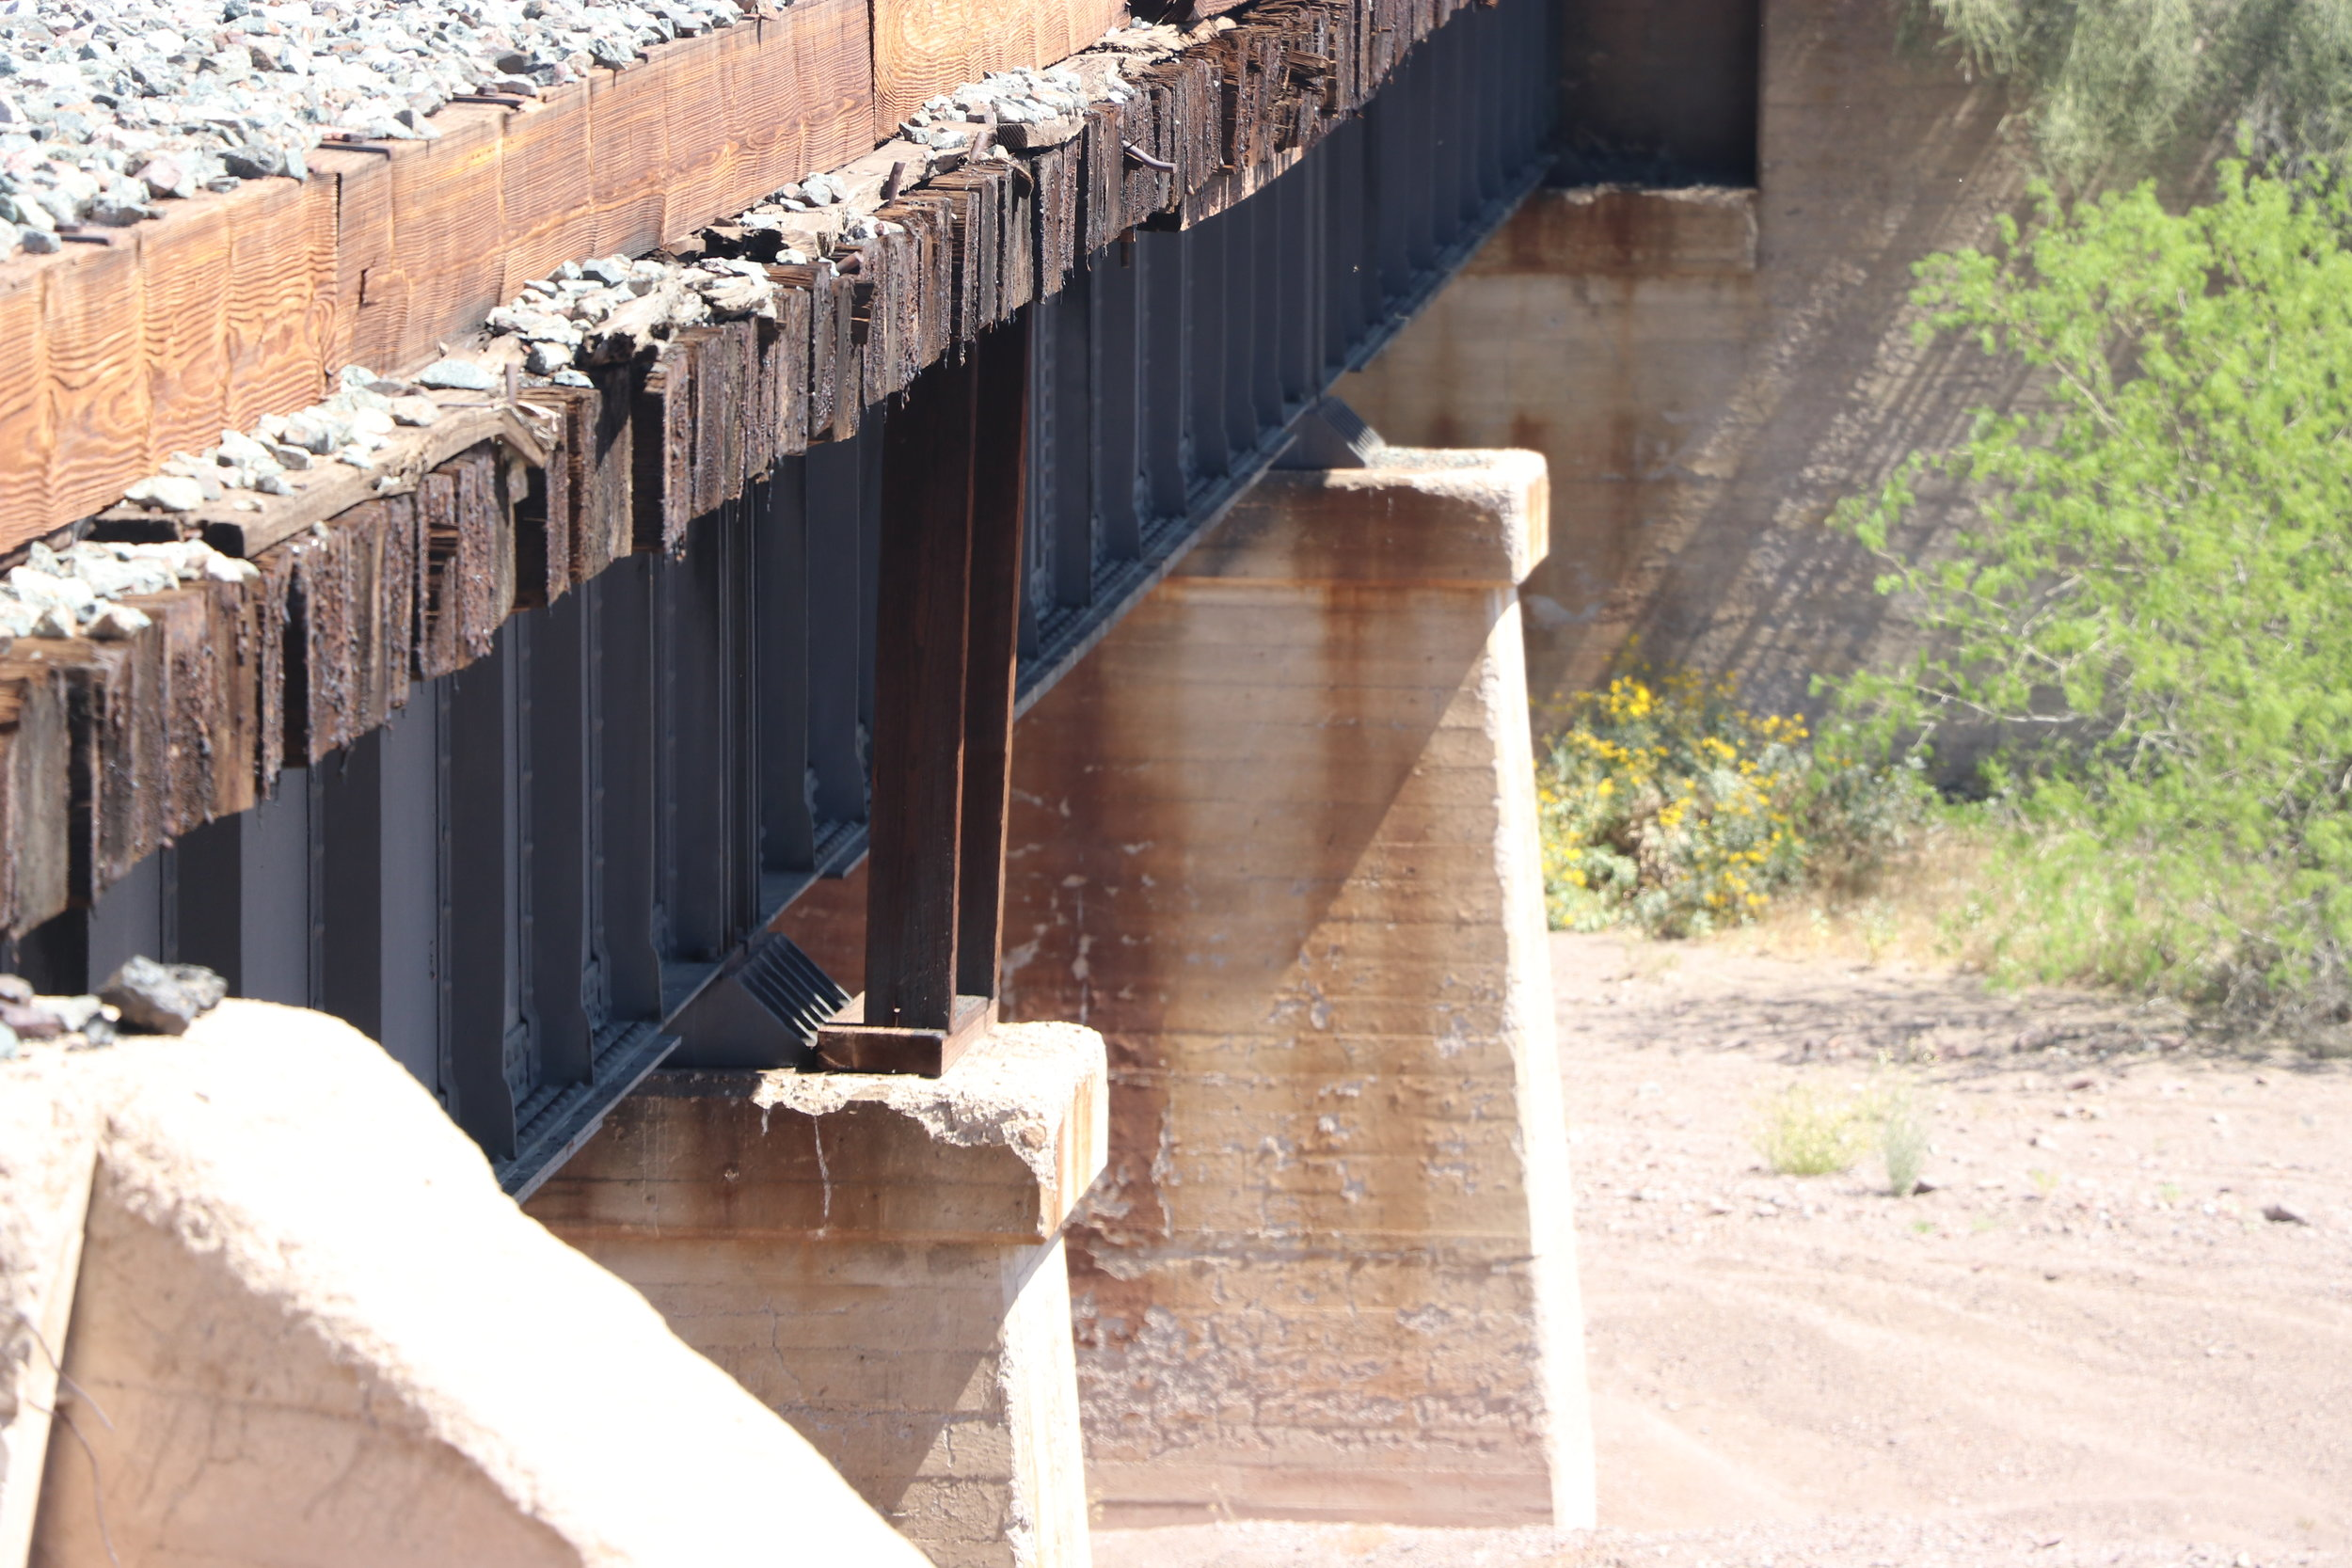 Braces remain under the railroad bridge from repair work done following the crash.